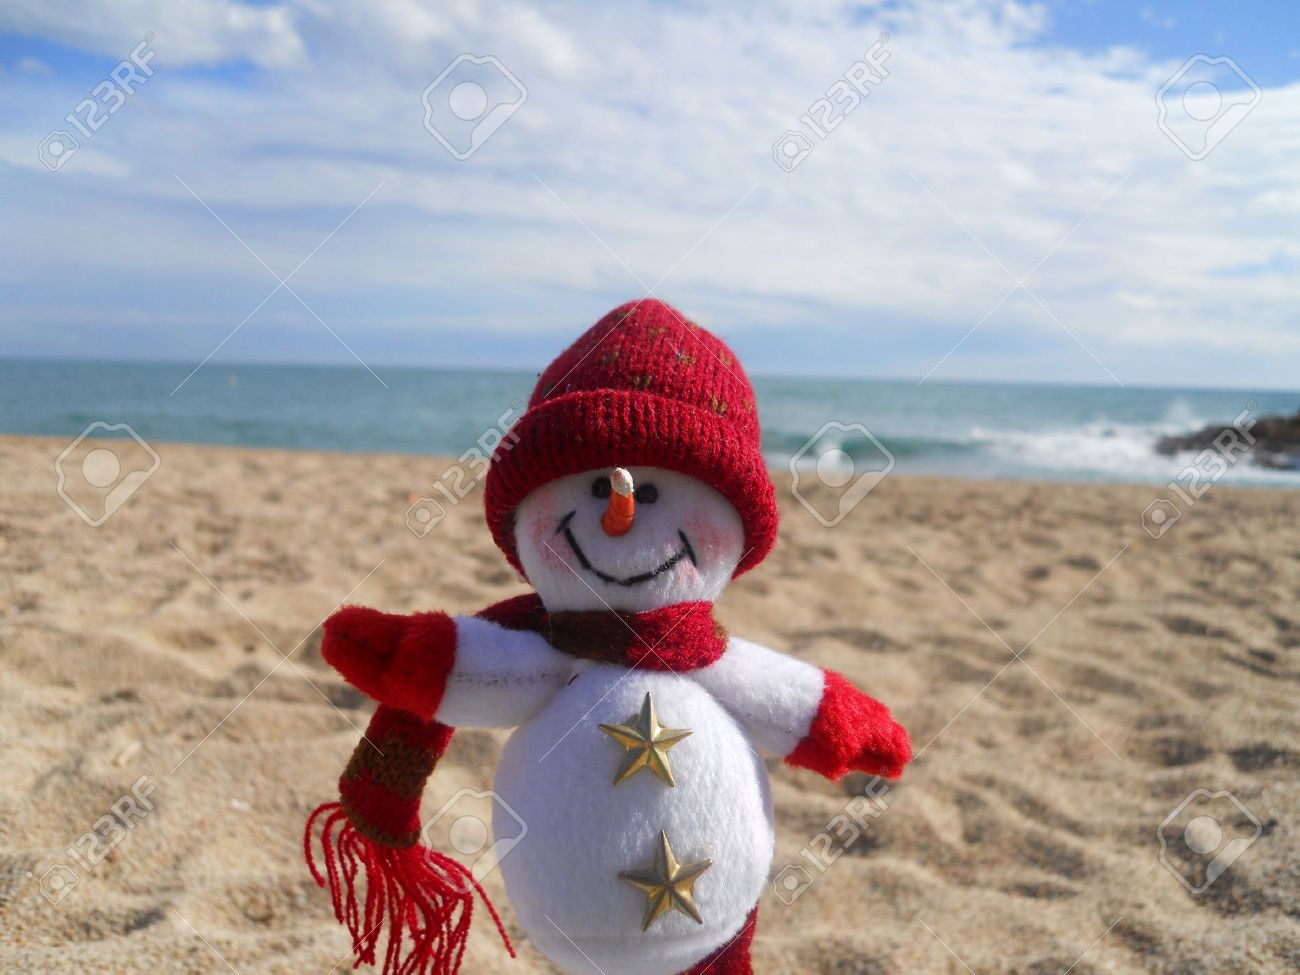 winter vacation (snowman at the beach) - 8879406